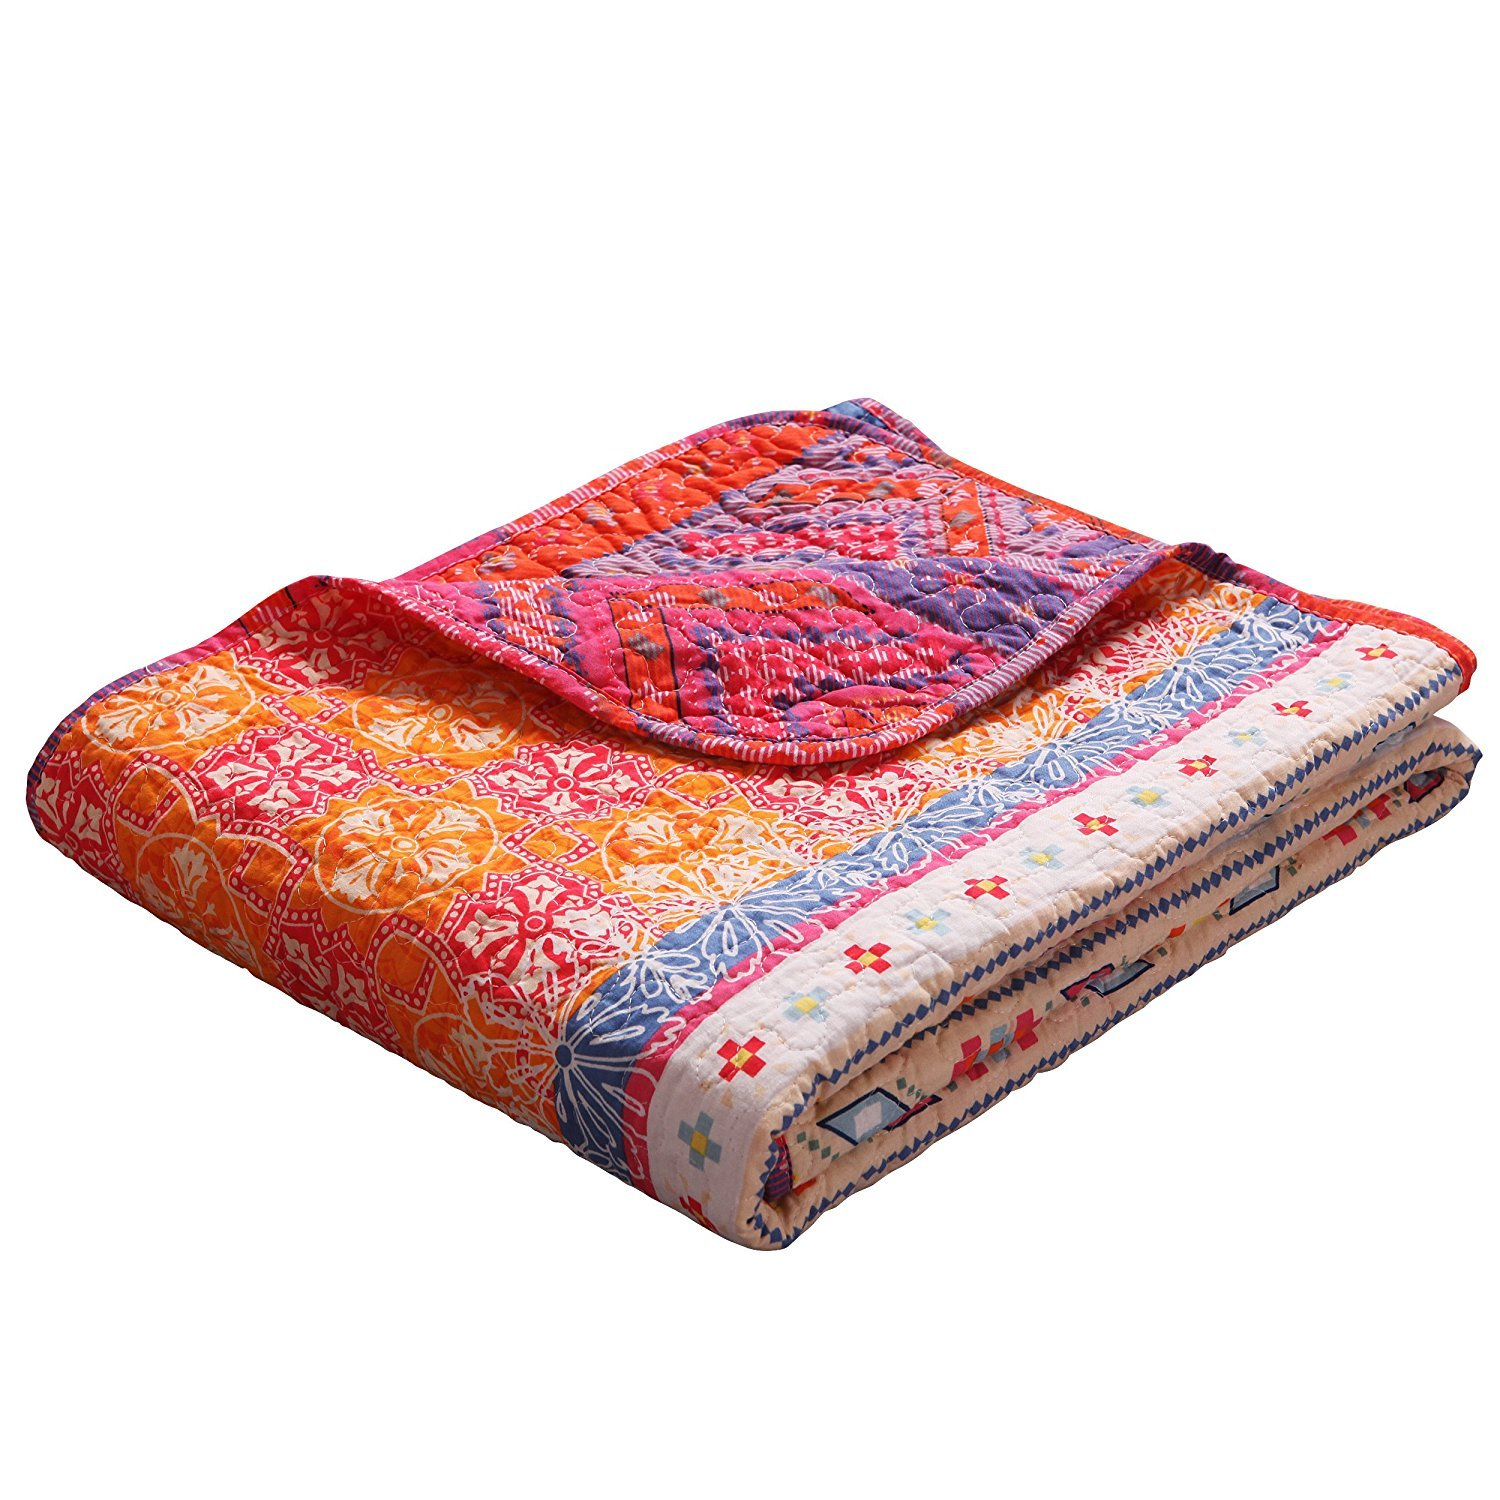 (Pattern 1) - Luxury Reversible 100% Cotton Multicoloured Boho Stripe Quilted Throw Blanket 150cm x 130cm Machine Washable and Dryable B01N4WISBX パターン2